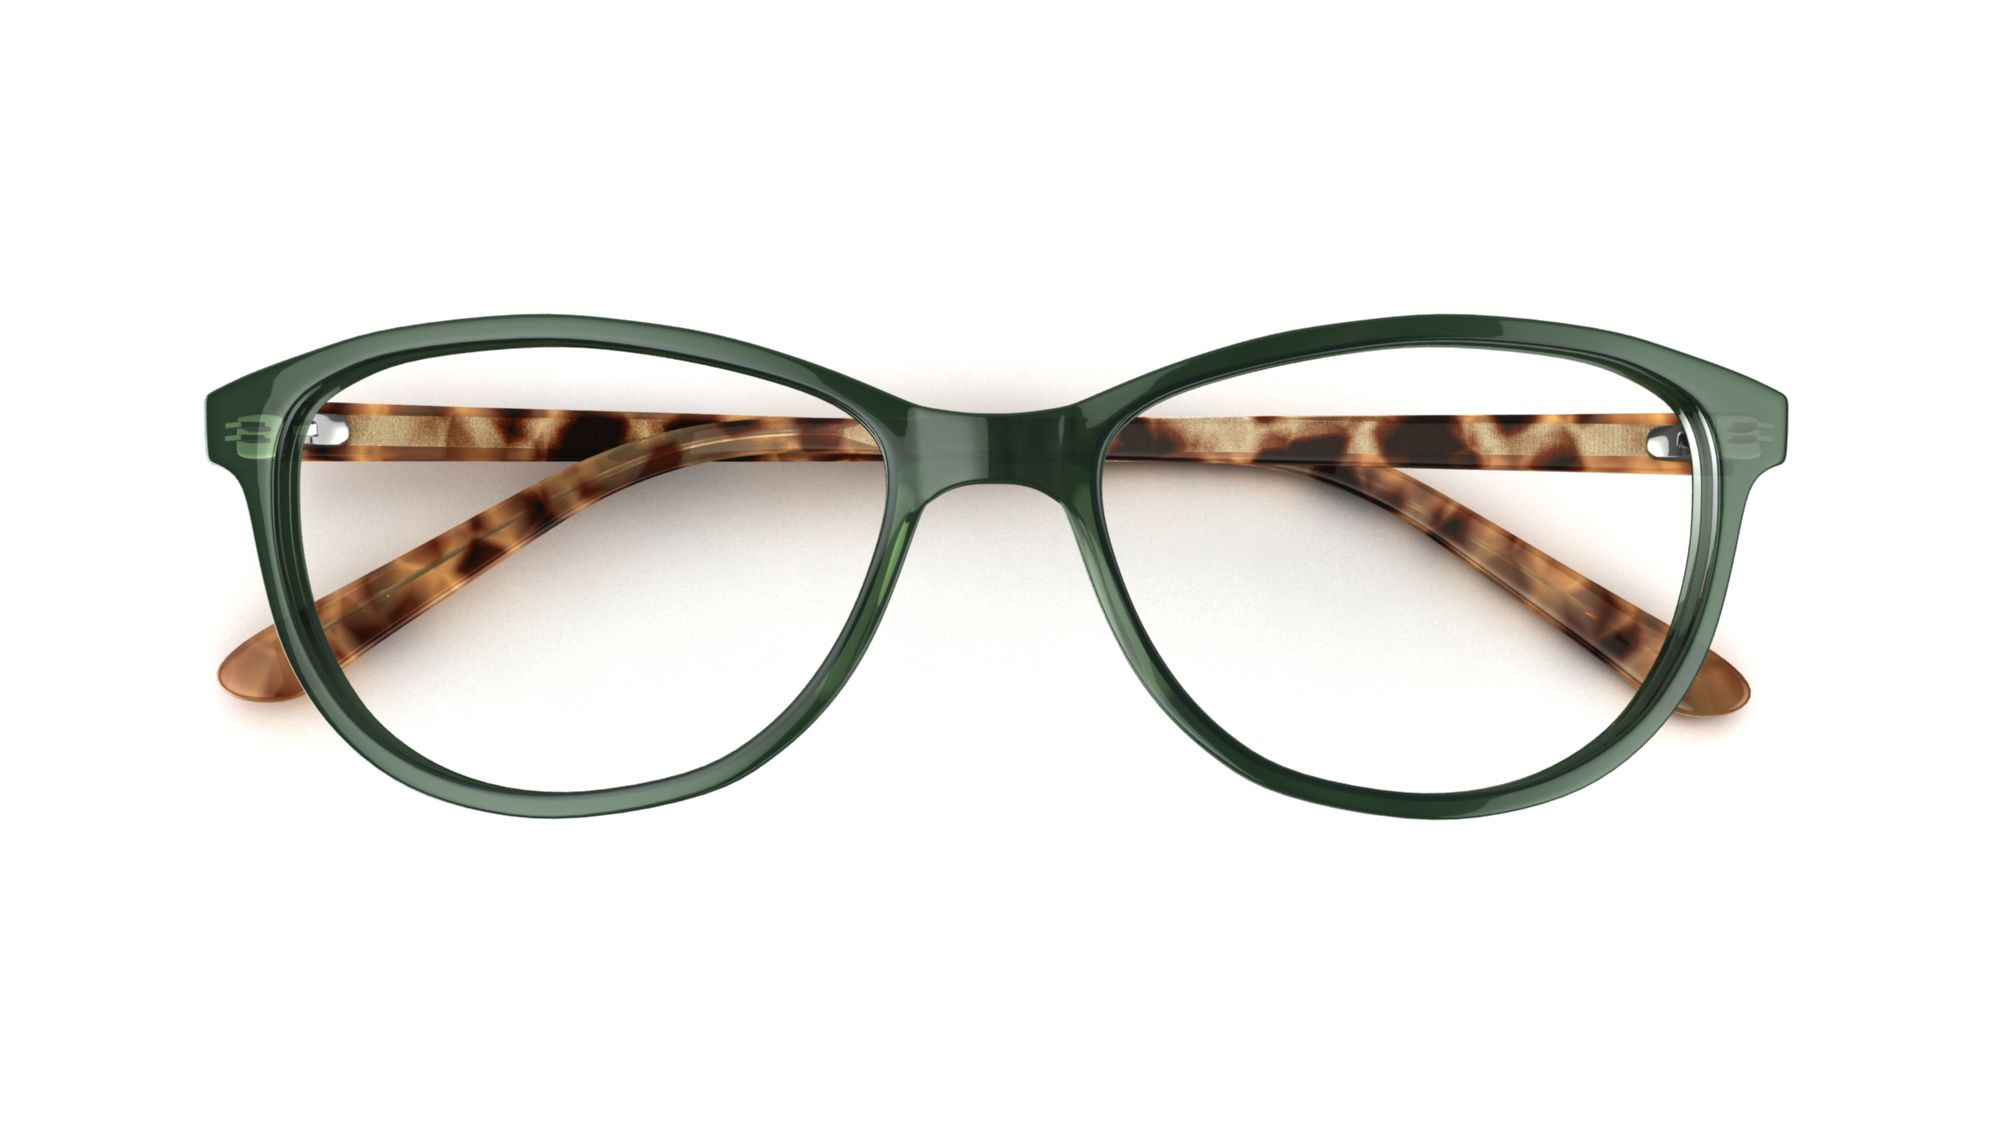 CHARLOTTE Glasses by Specsavers Green Glasses Frames 1ff89e7a674ad